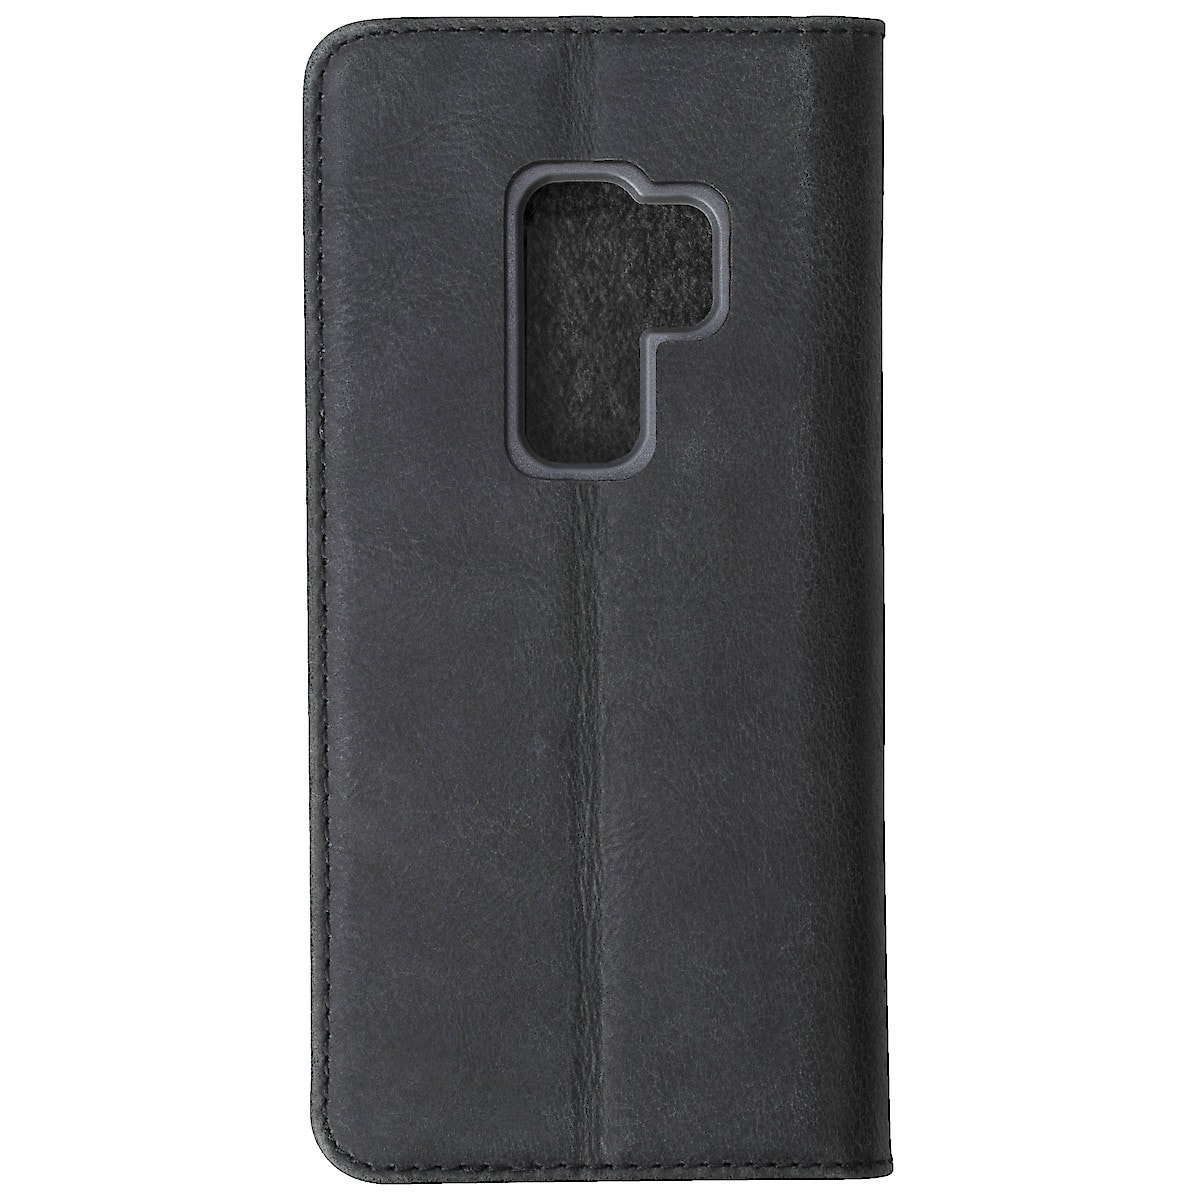 Krusell Sunne FolioCase Wallet Case for Samsung Galaxy S9 Plus